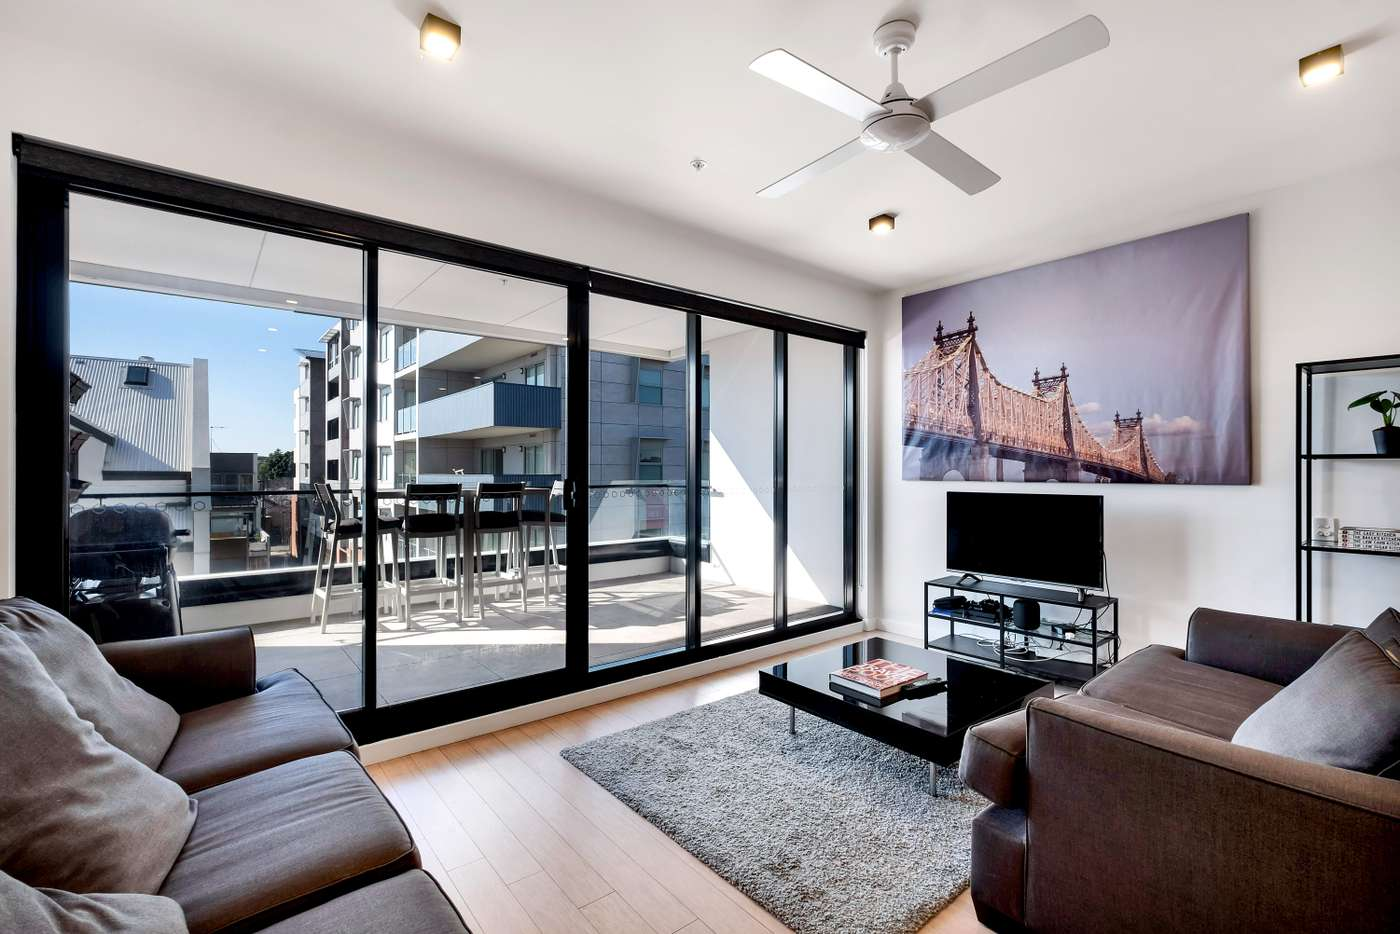 Main view of Homely apartment listing, 208/14 Sixth Street, Bowden SA 5007